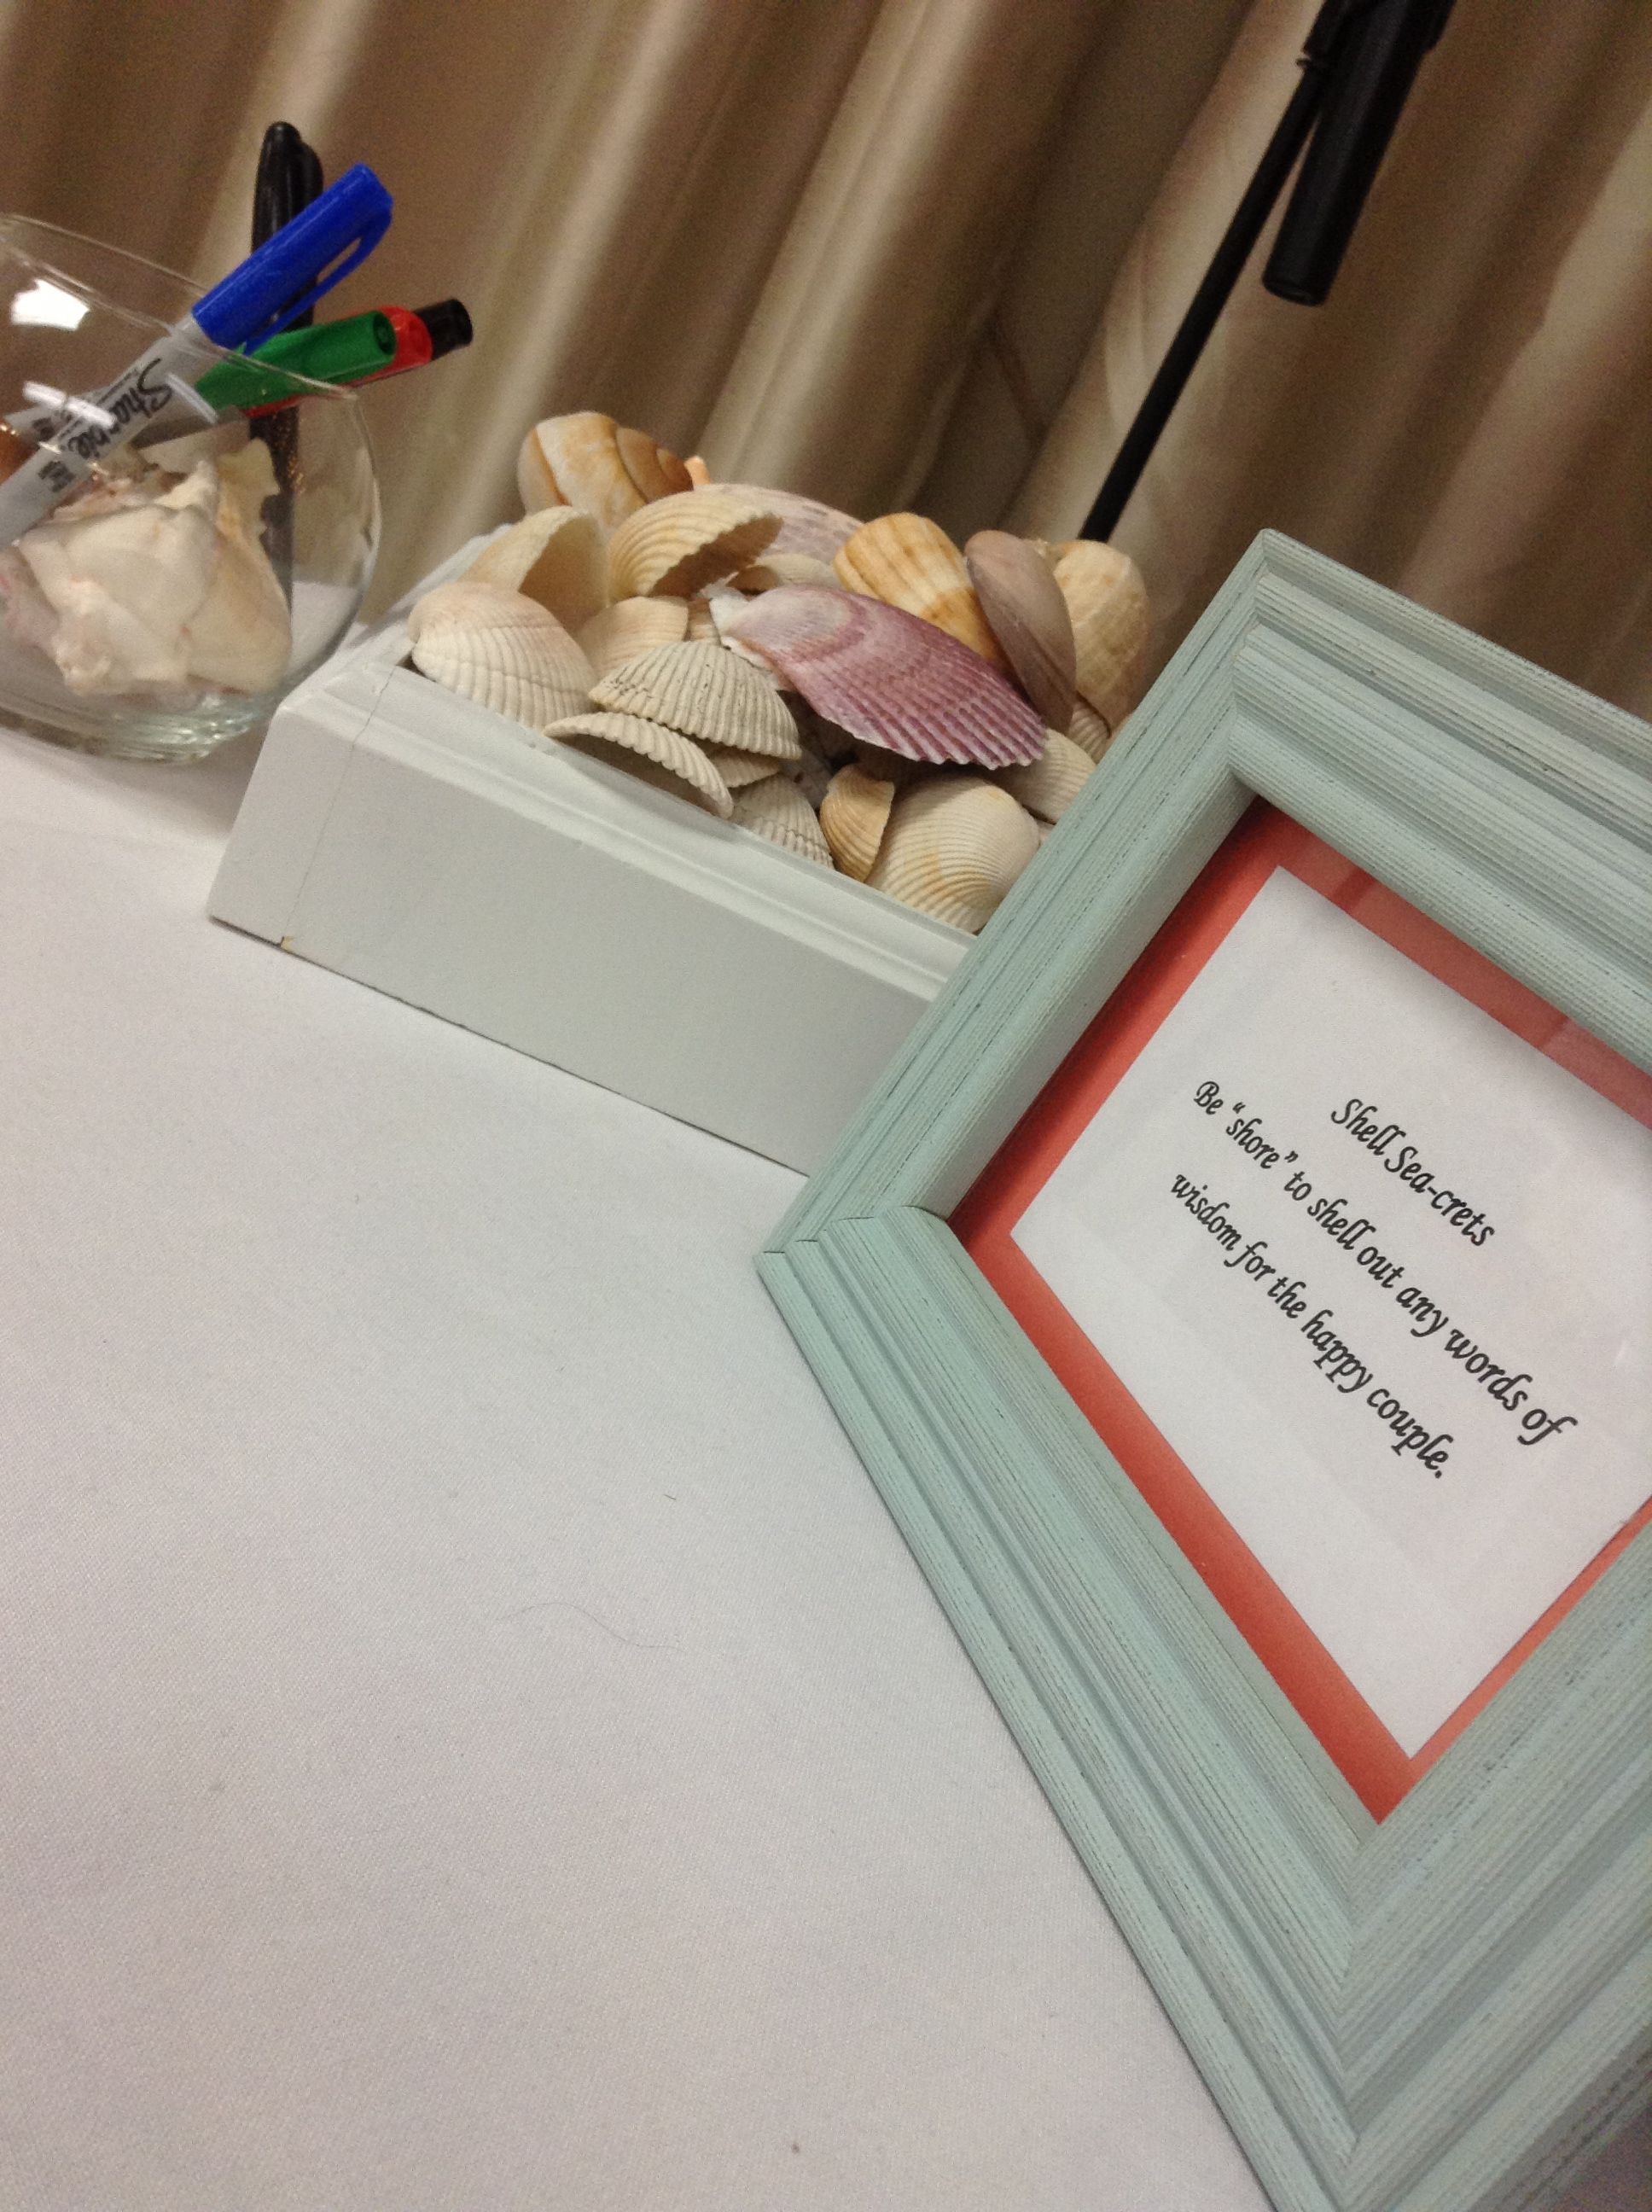 beach themed bridal shower marriage advice on shells quote credit to my husband